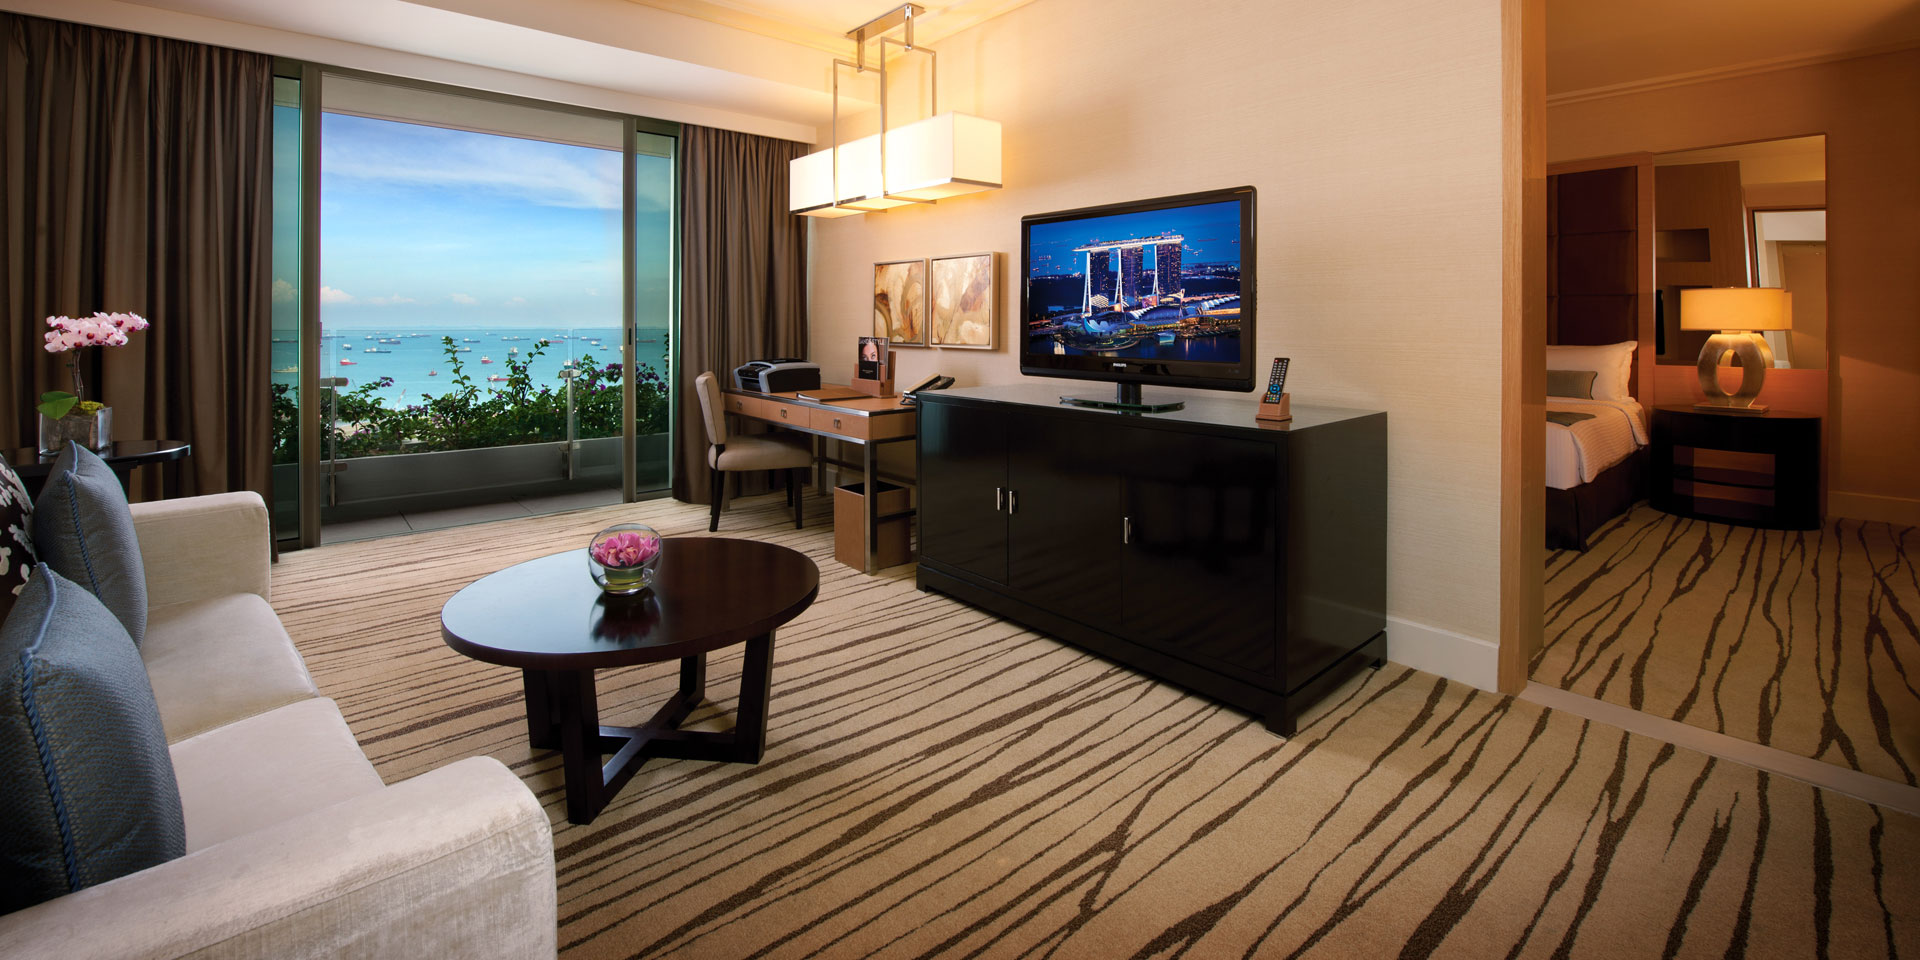 Orchid suite in marina bay sands singapore hotel for Living room suit